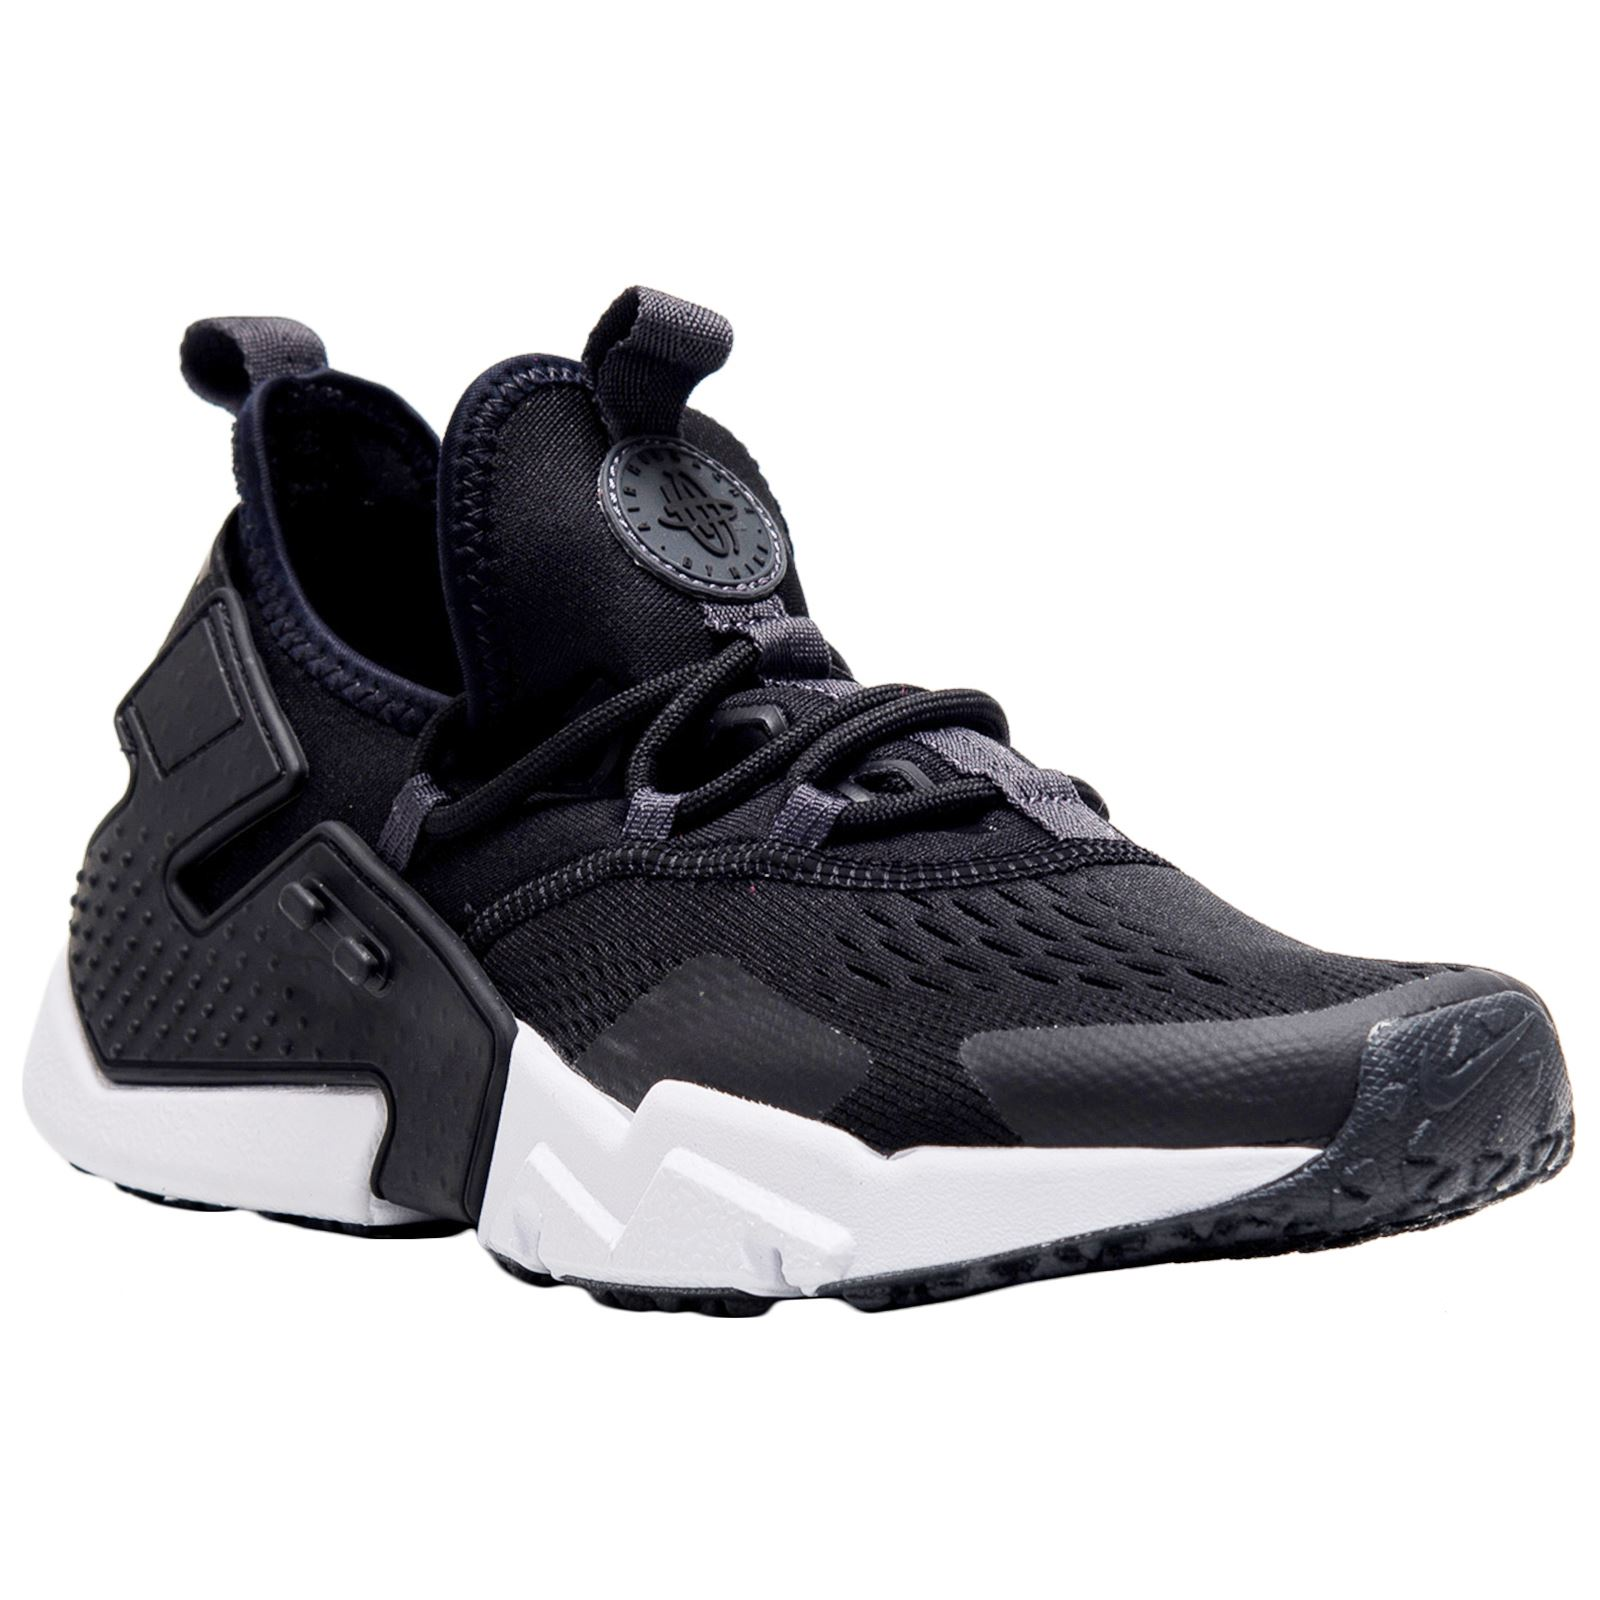 best service ece57 14618 Details about Nike Air Huarache Drift Breathe Black Anthracite Mens Mesh  Low-top Trainers